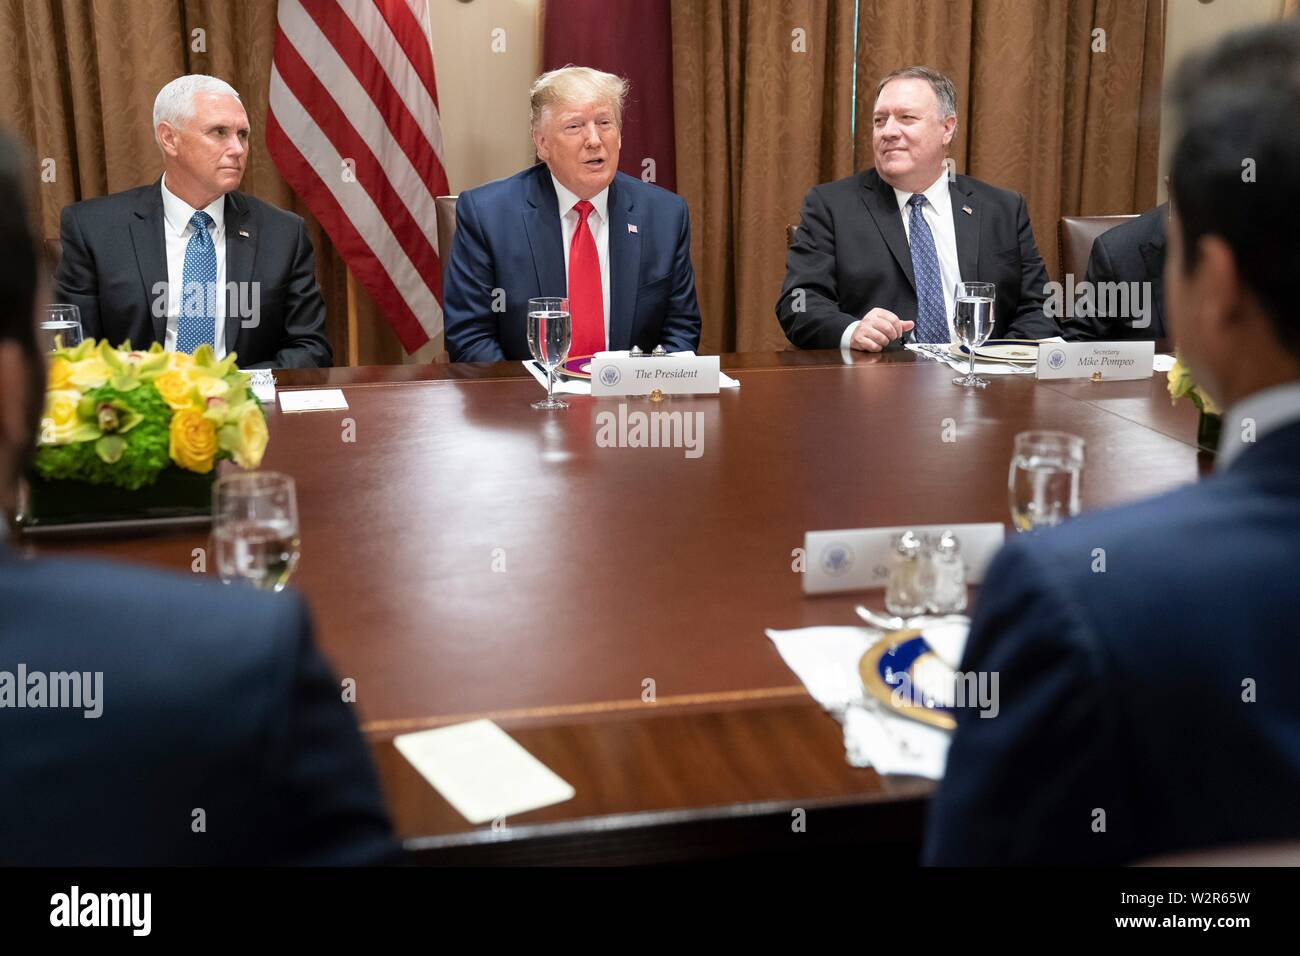 U.S President Donald Trump, joined by Vice President Mike Pence, left, and Secretary of State Mike Pompeo, right, participate in an expanded working luncheon with the Emir of Qatar, Tamin bin Hamad Al Thani and delegates at the Cabinet Room of the White House July 9, 2019 in Washington, DC. - Stock Image